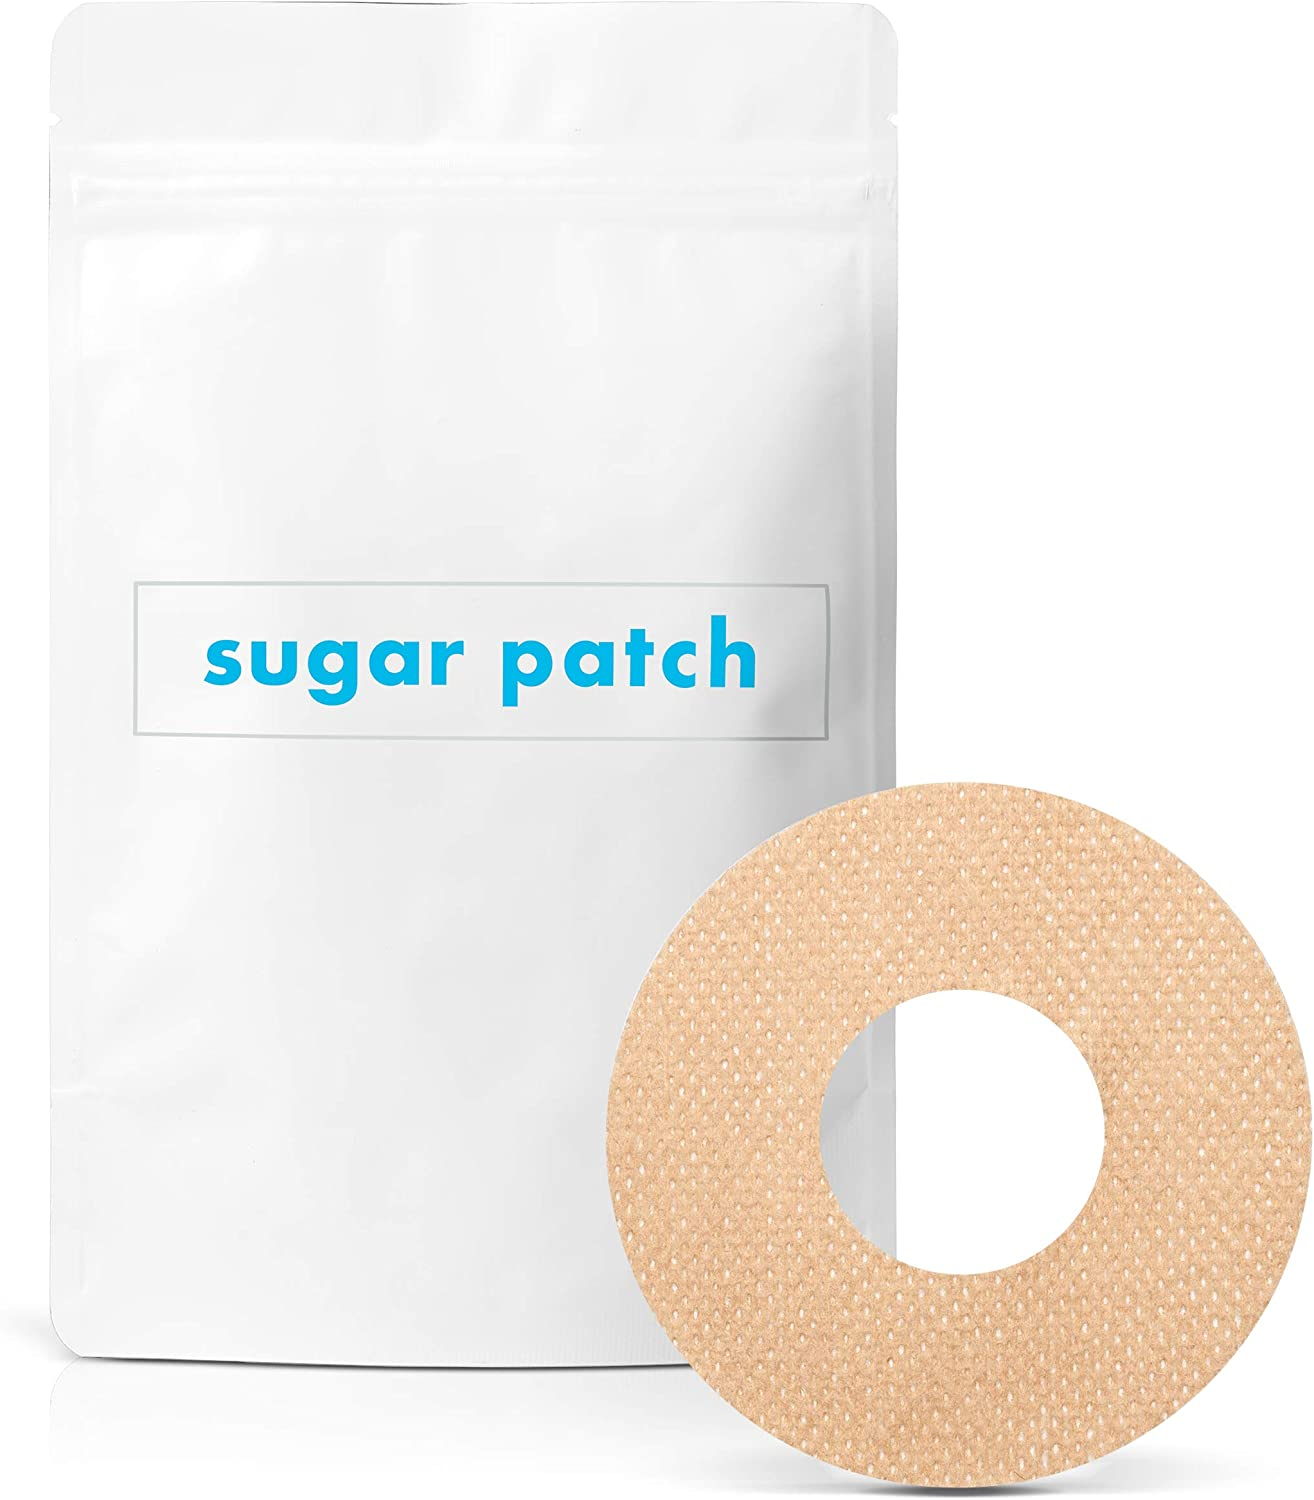 My Sugar Patch Waterproof Adhesive Patch for Abbott Freestyle Libre – Pack of 30 81HWdcc1eRL